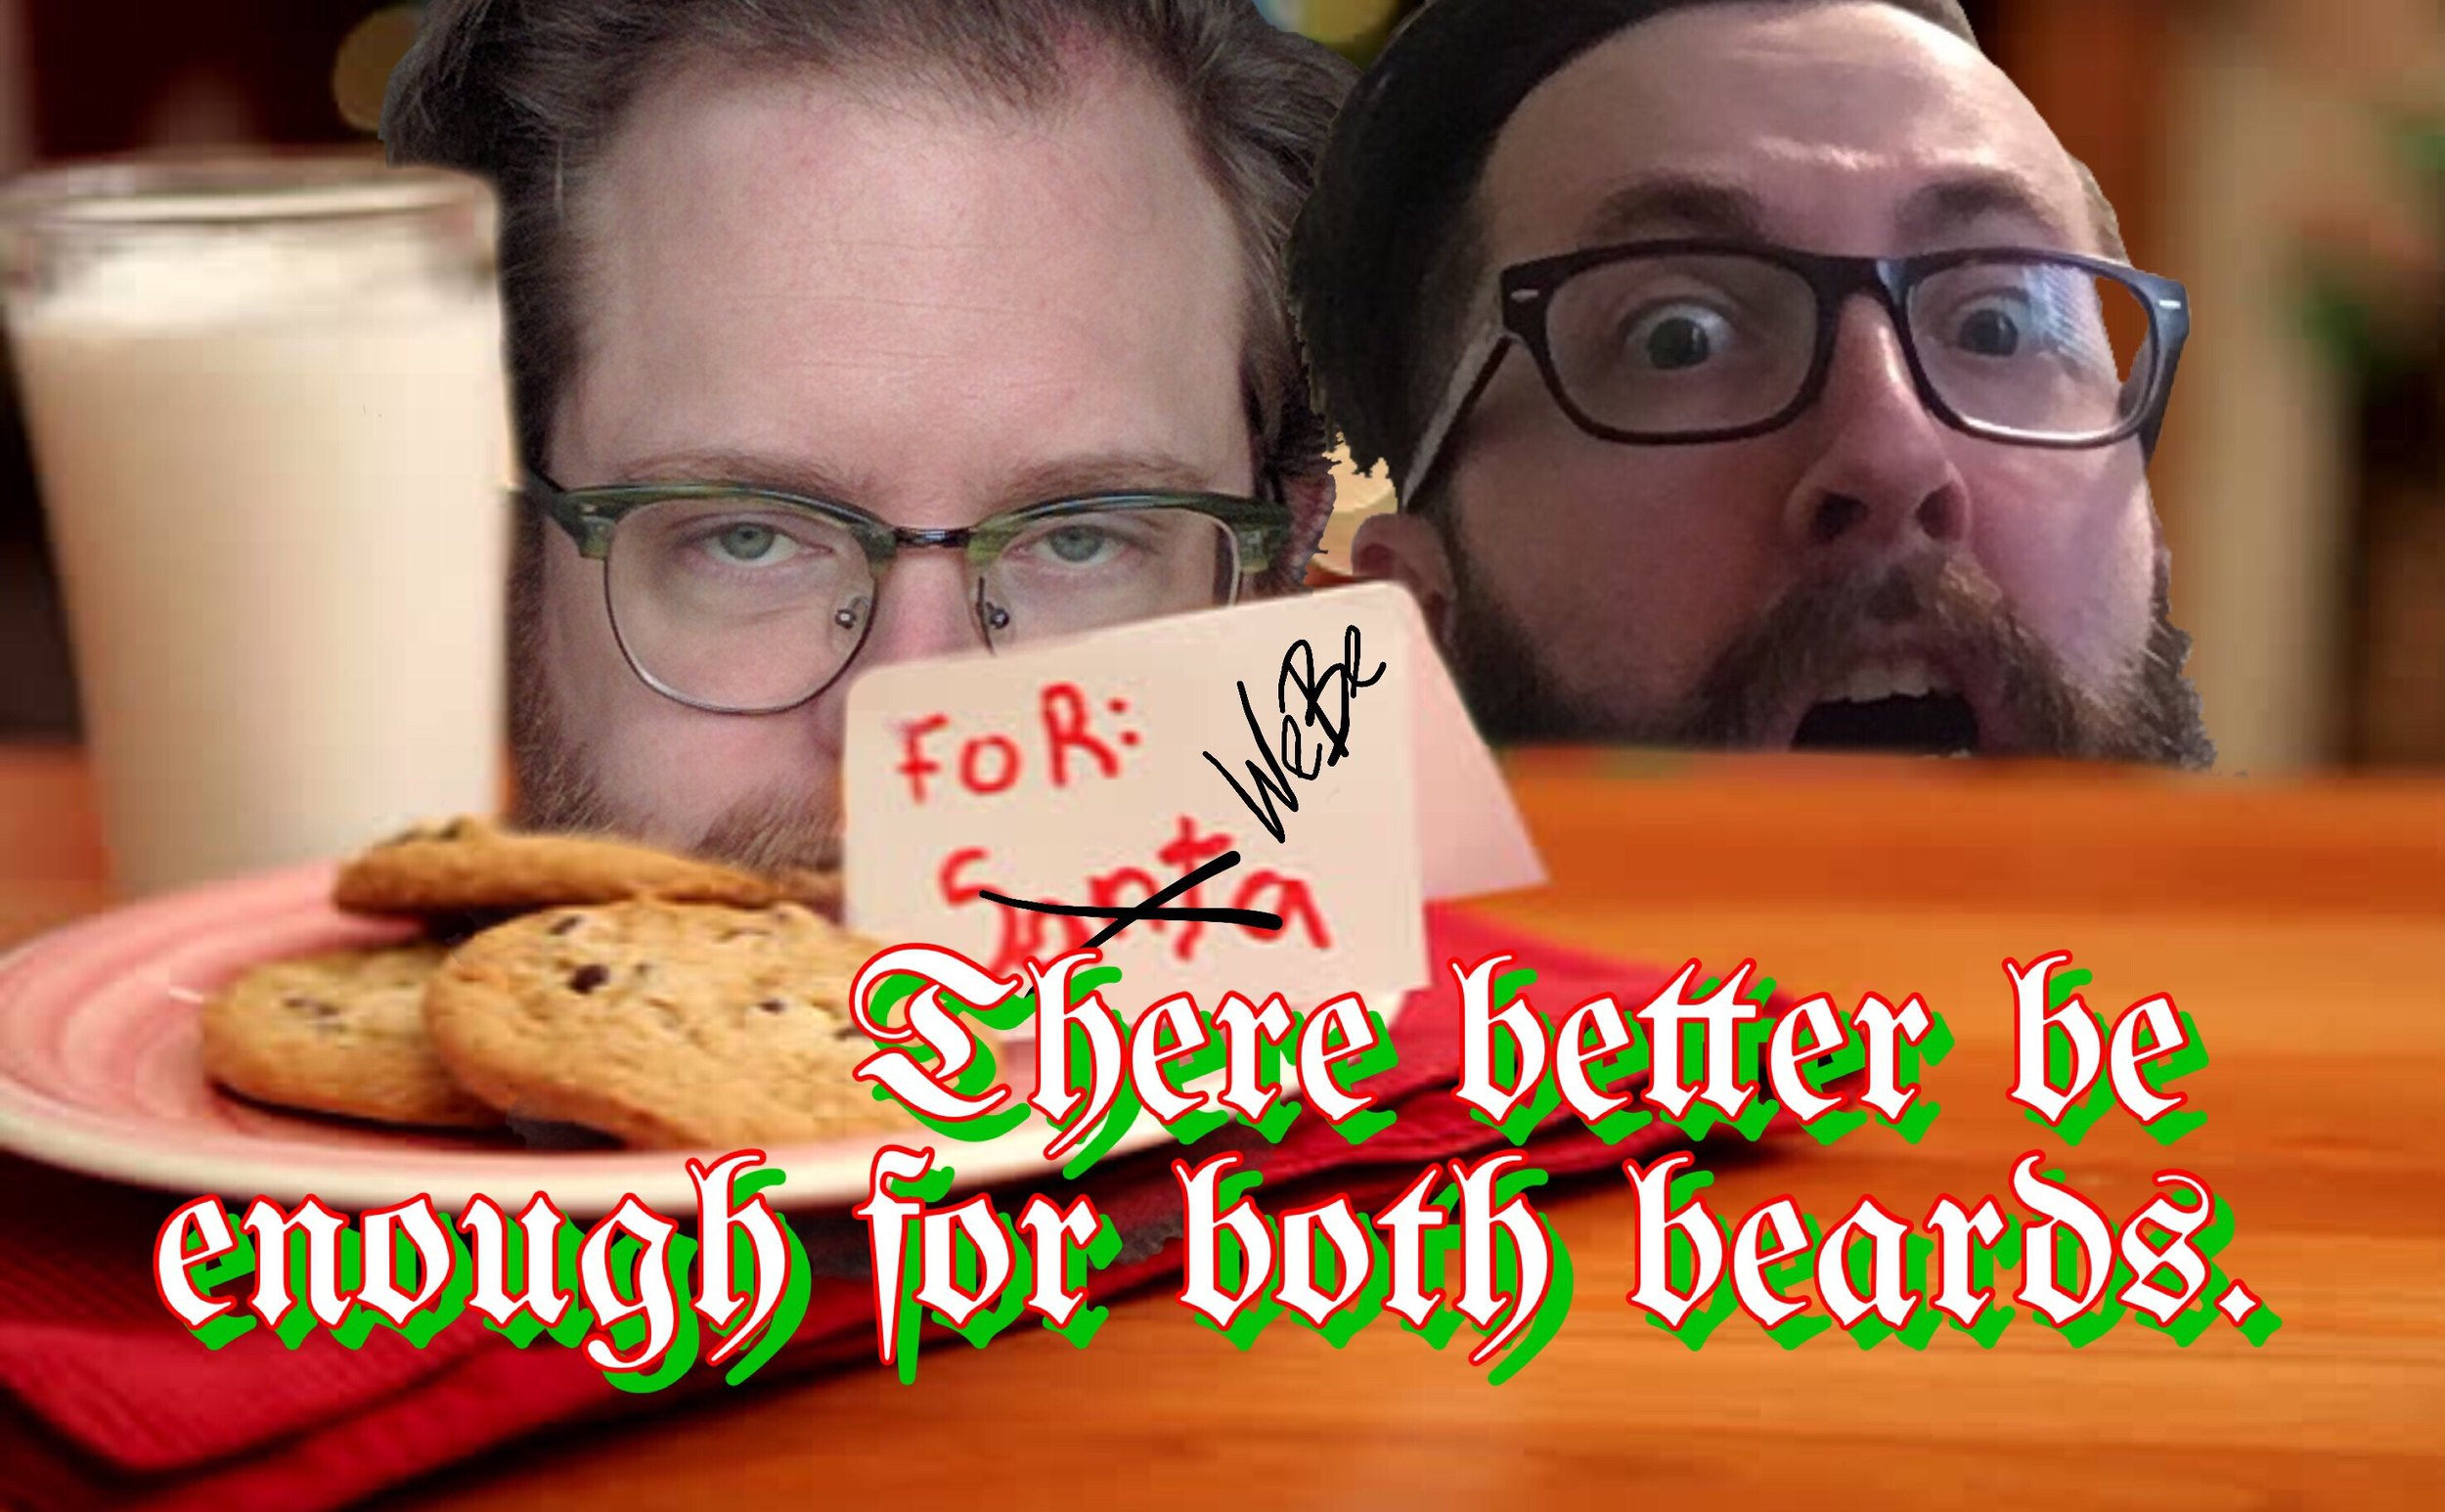 There Better Be Enough for Both Beards.jpg